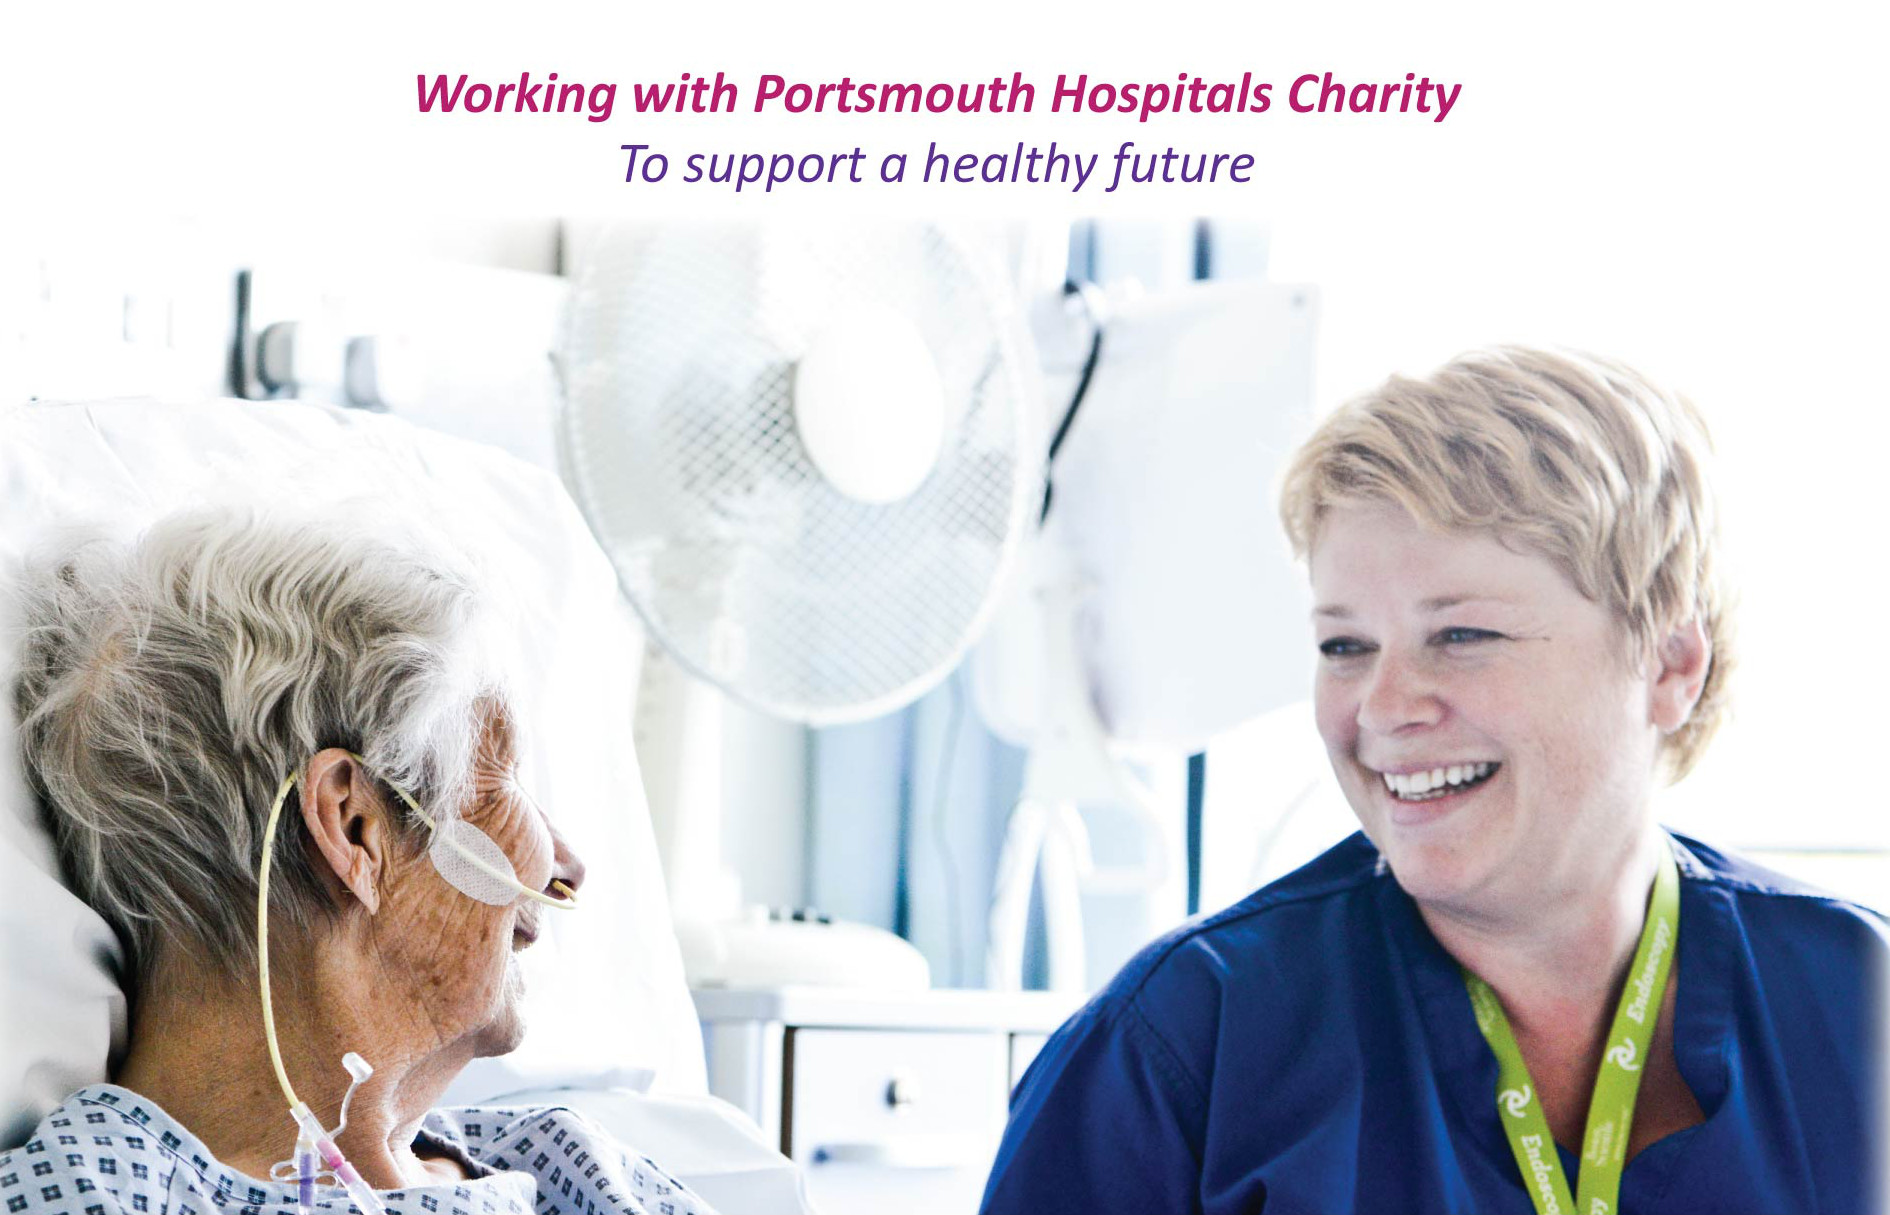 About Portsmouth Hospitals Charity